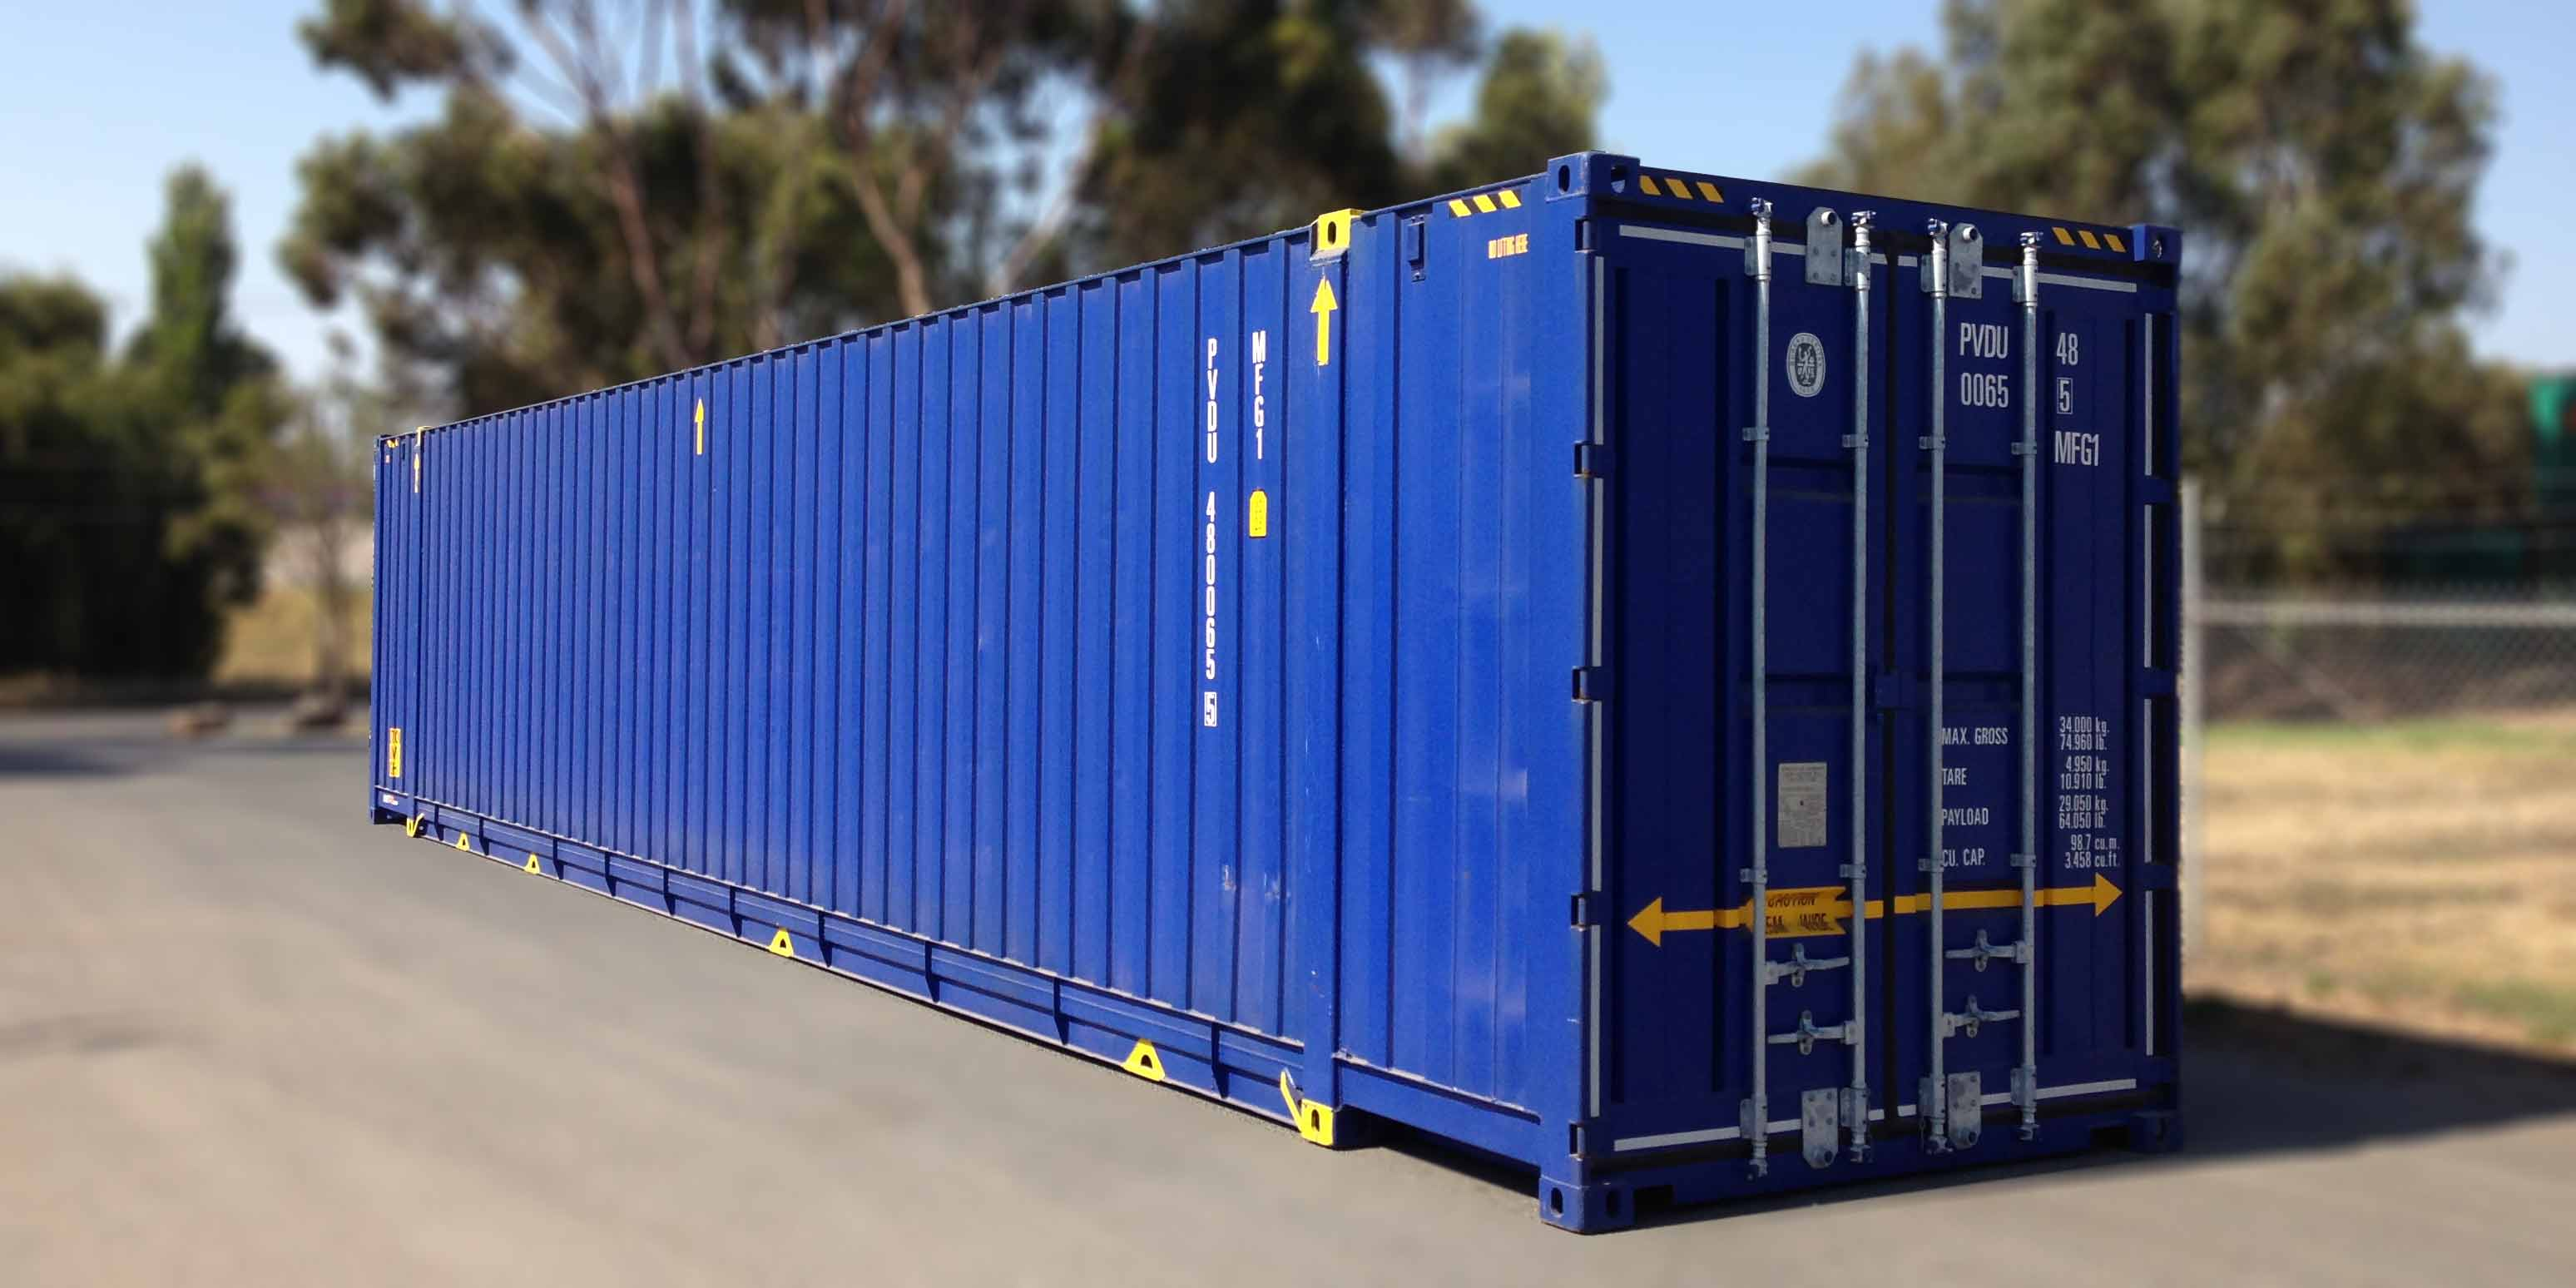 48' dry freight box constructed with high tensile steel for minimum tare-weight and maximum payload.